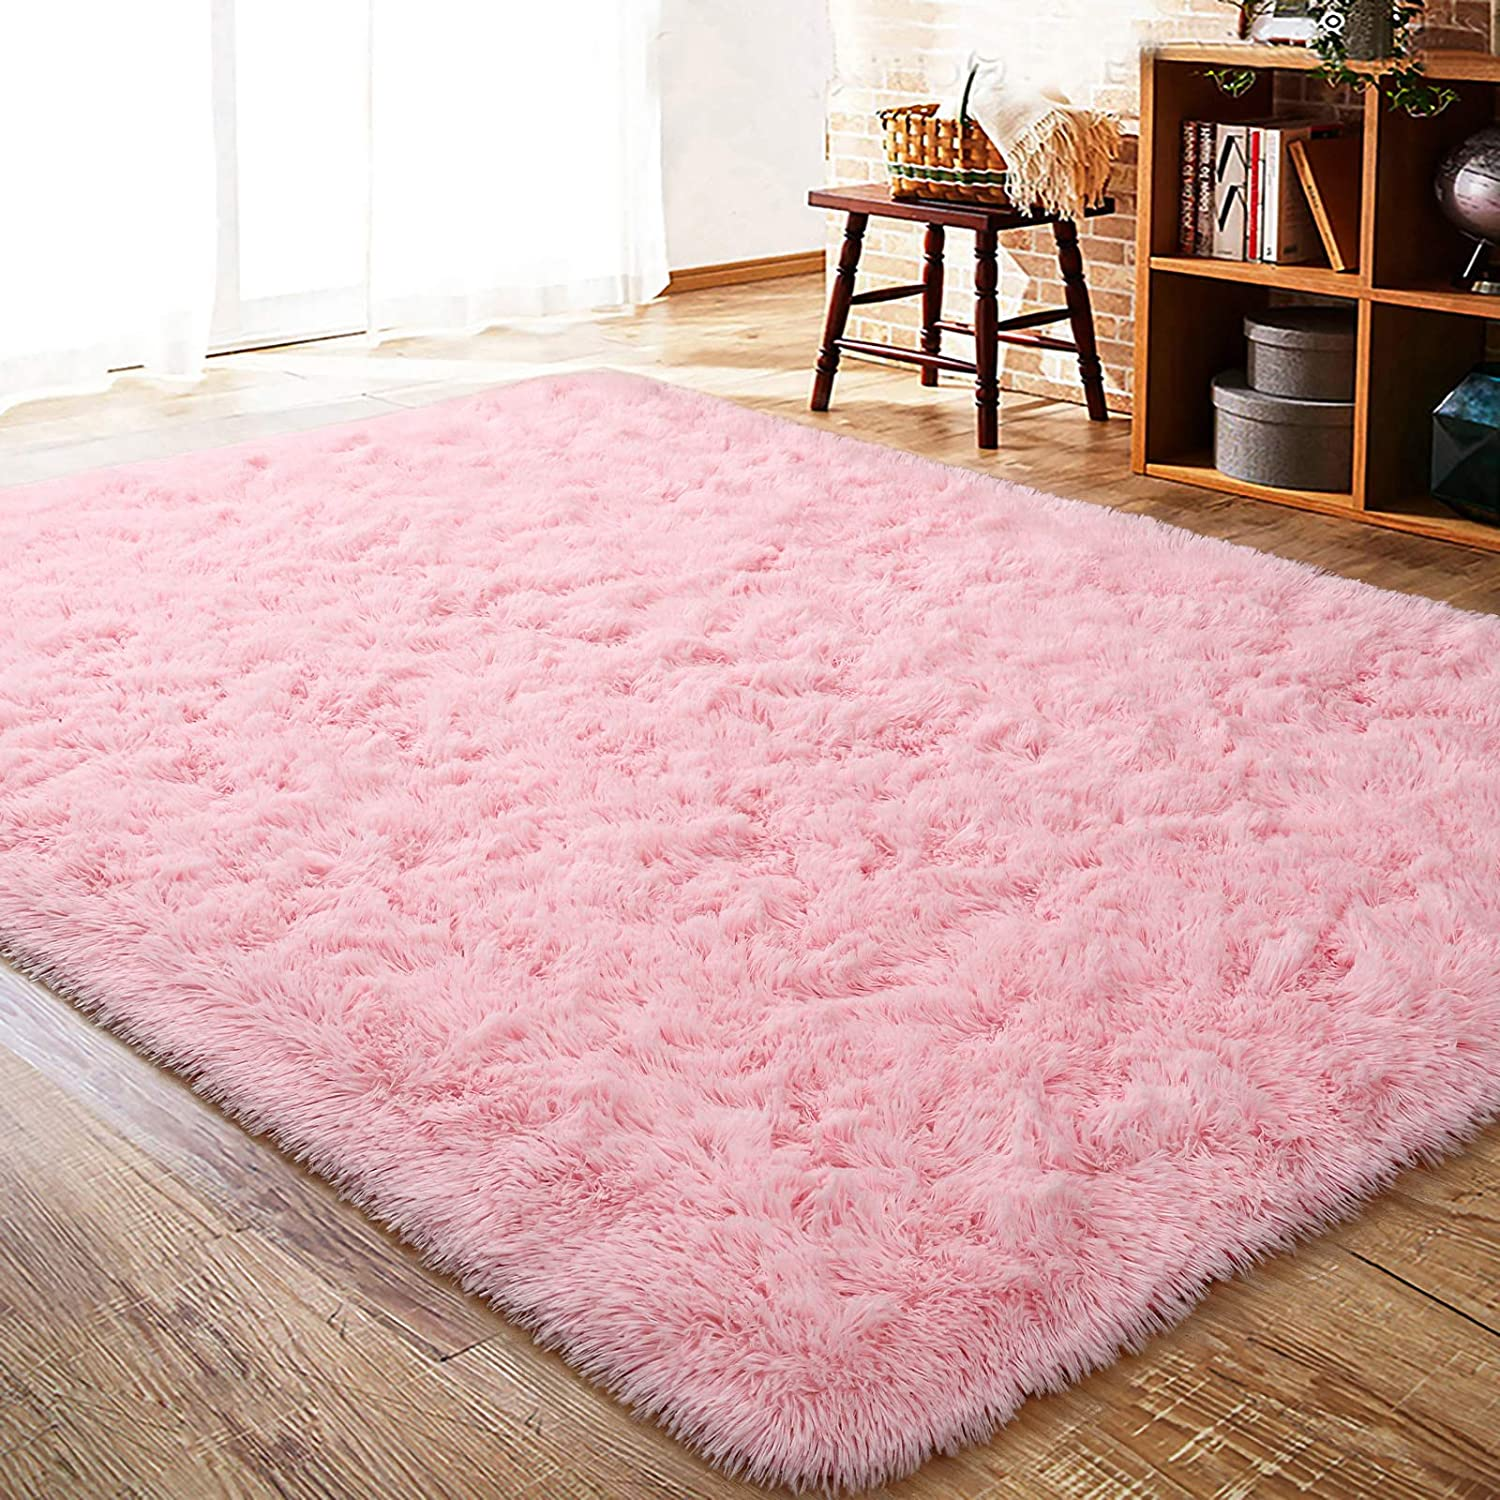 ISEAU Fluffy Rug Carpets Soft Shaggy Area Rug Indoor Floor Rugs for Kids Room Fuzzy Carpet Comfy Cute Nursery Rug Bedside Rug for Boys Girls Bedroom Living Room Home Decor Mat, 3ft x 5ft, Pink